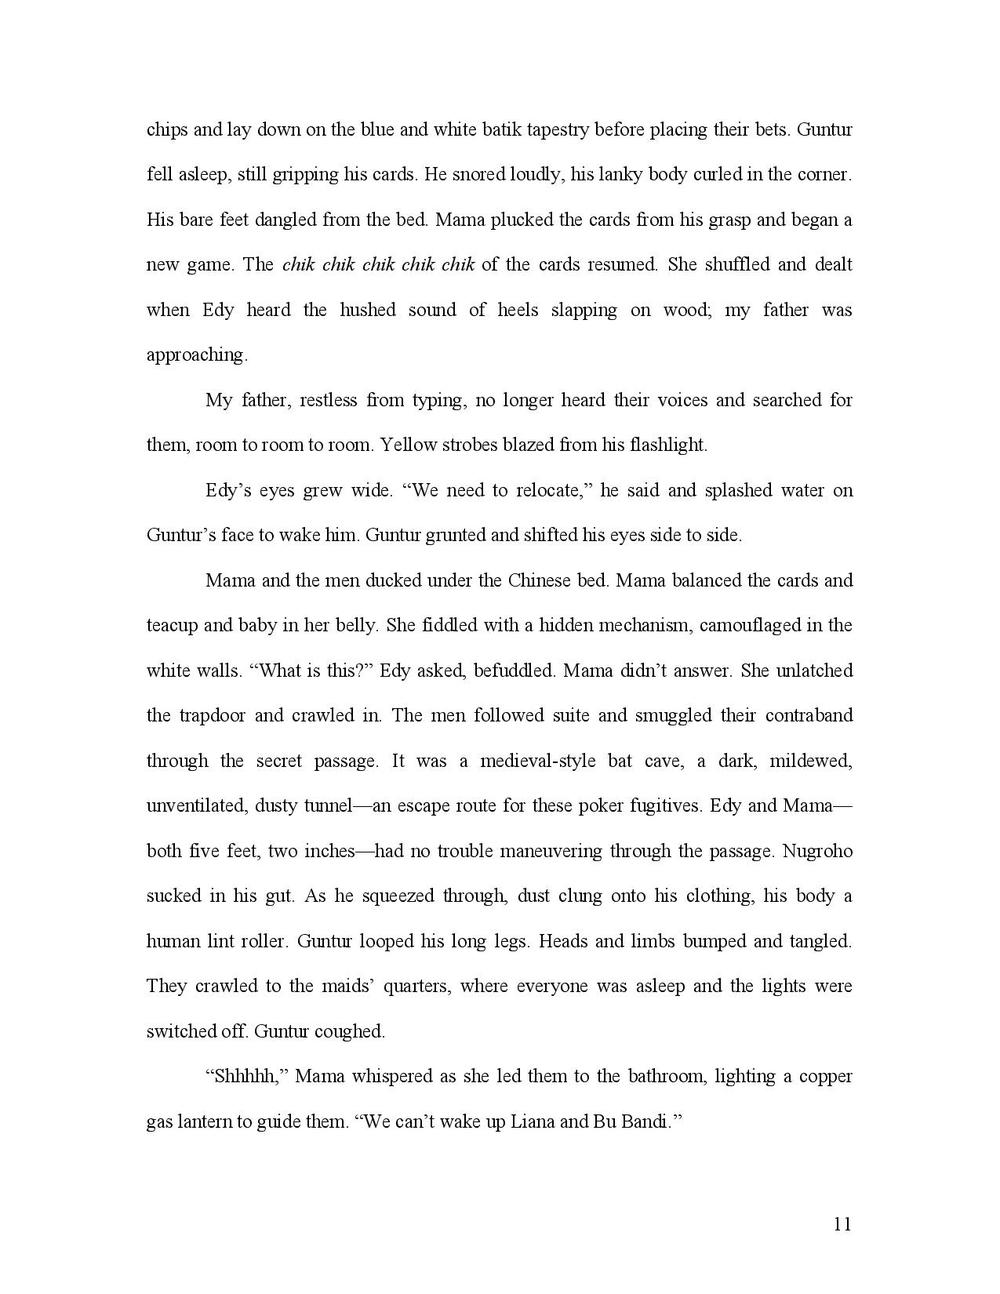 In The Cards_edit_excerpt-page-011.jpg